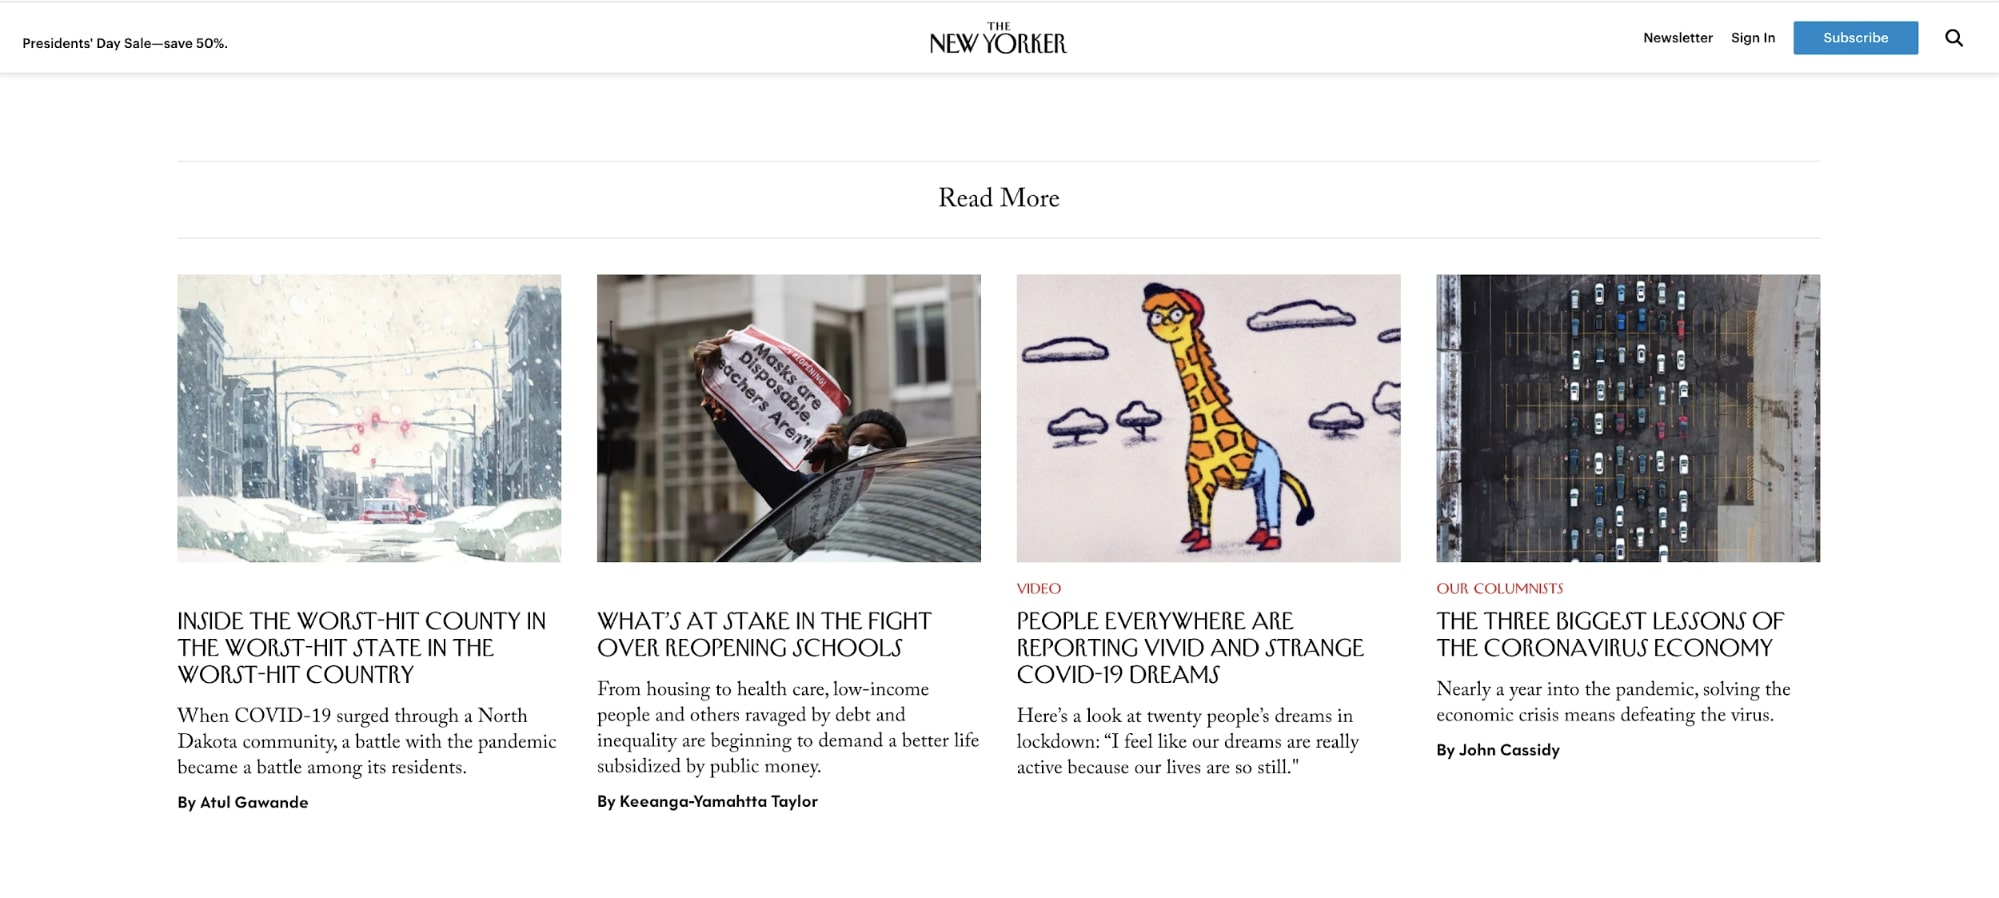 Related Articles New Yorker